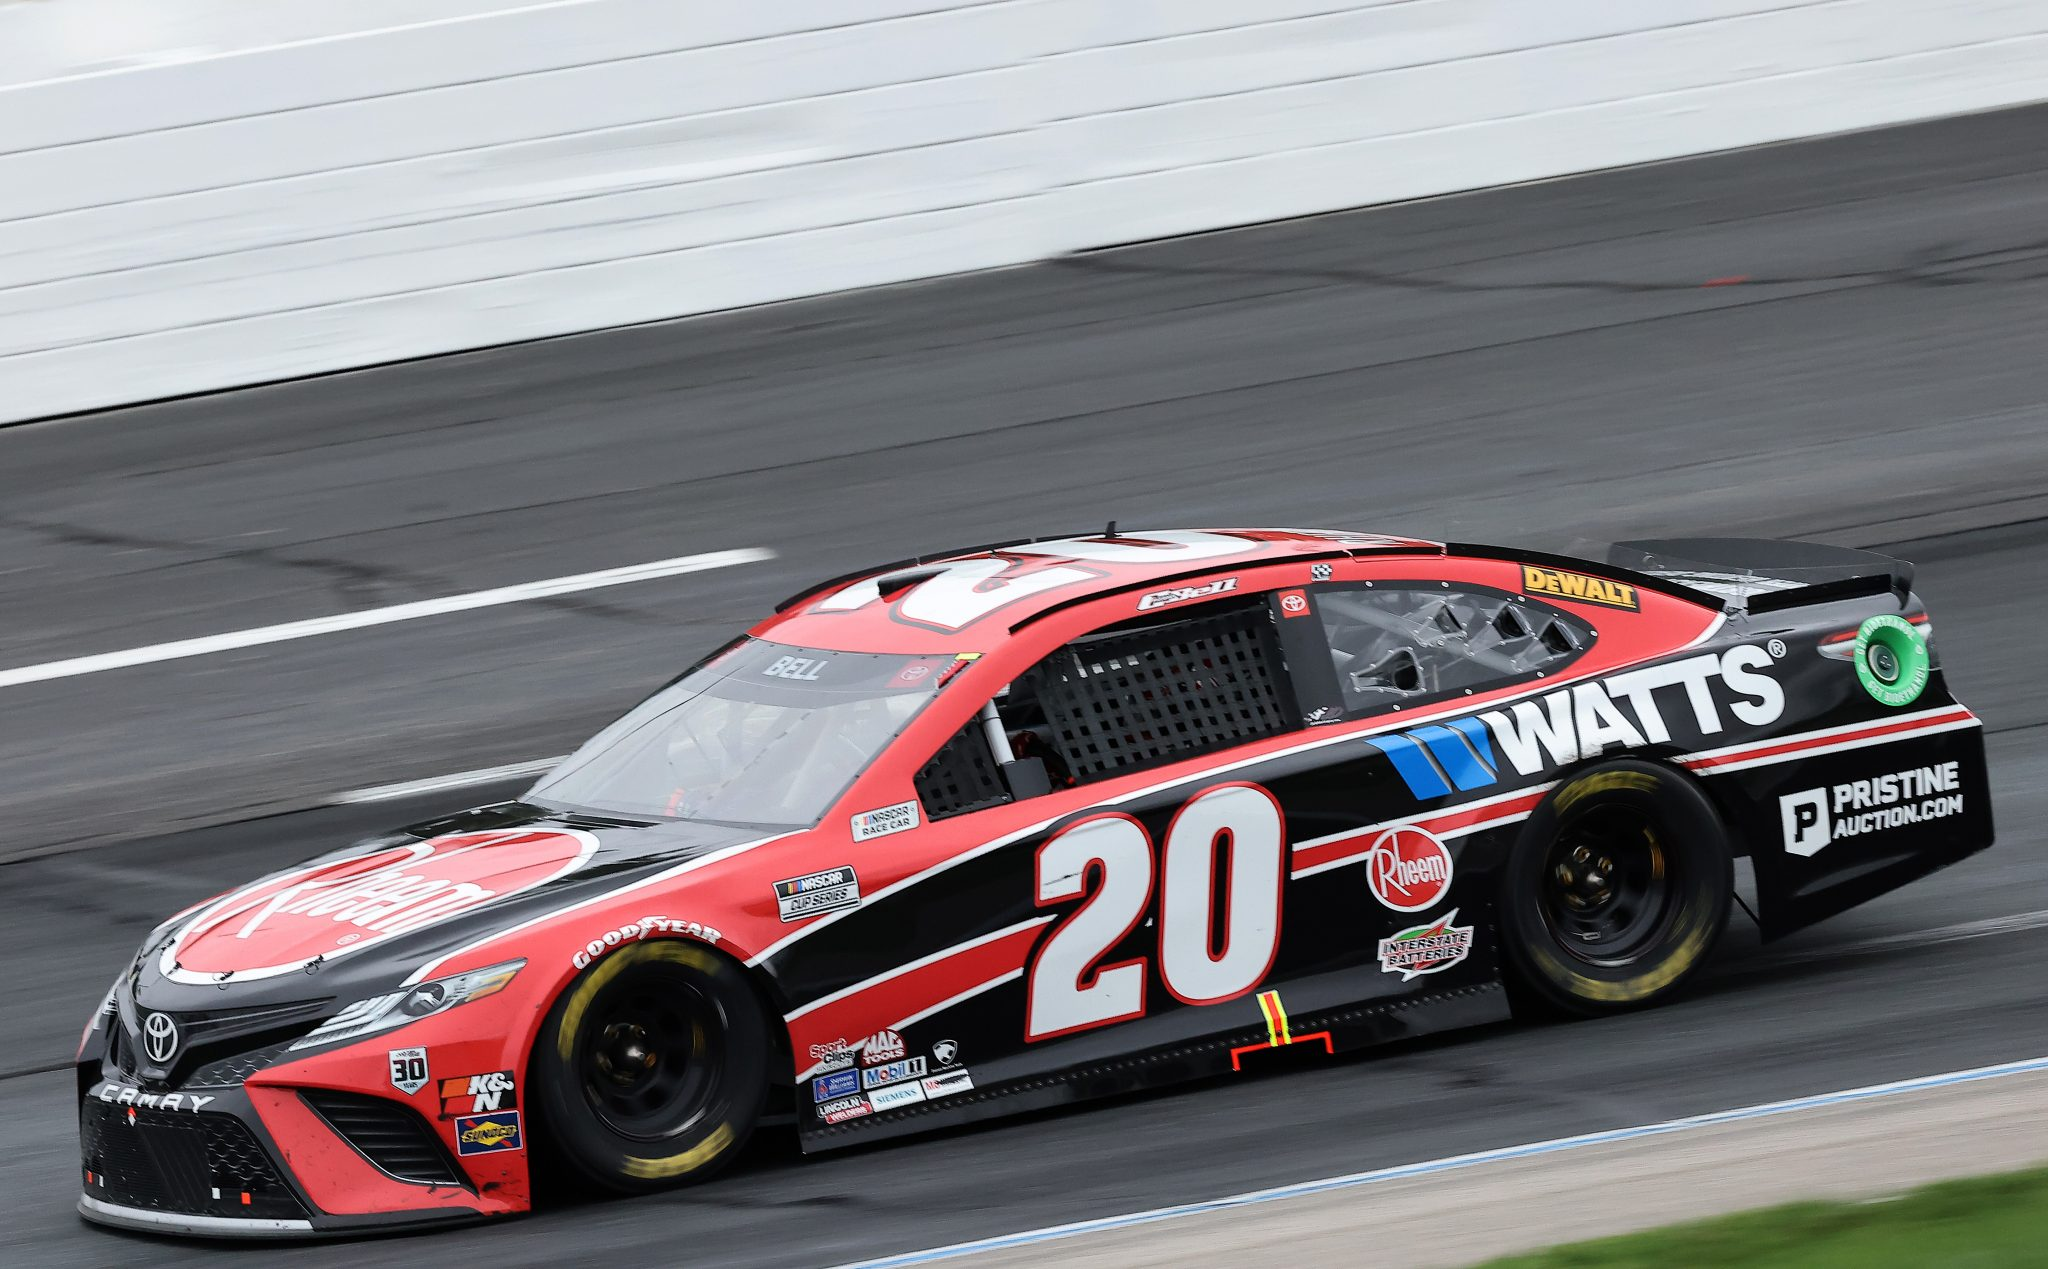 LOUDON, NEW HAMPSHIRE - JULY 18: Christopher Bell, driver of the #20 Rheem/Watts Toyota, drives during the NASCAR Cup Series Foxwoods Resort Casino 301 at New Hampshire Motor Speedway on July 18, 2021 in Loudon, New Hampshire. (Photo by James Gilbert/Getty Images) | Getty Images